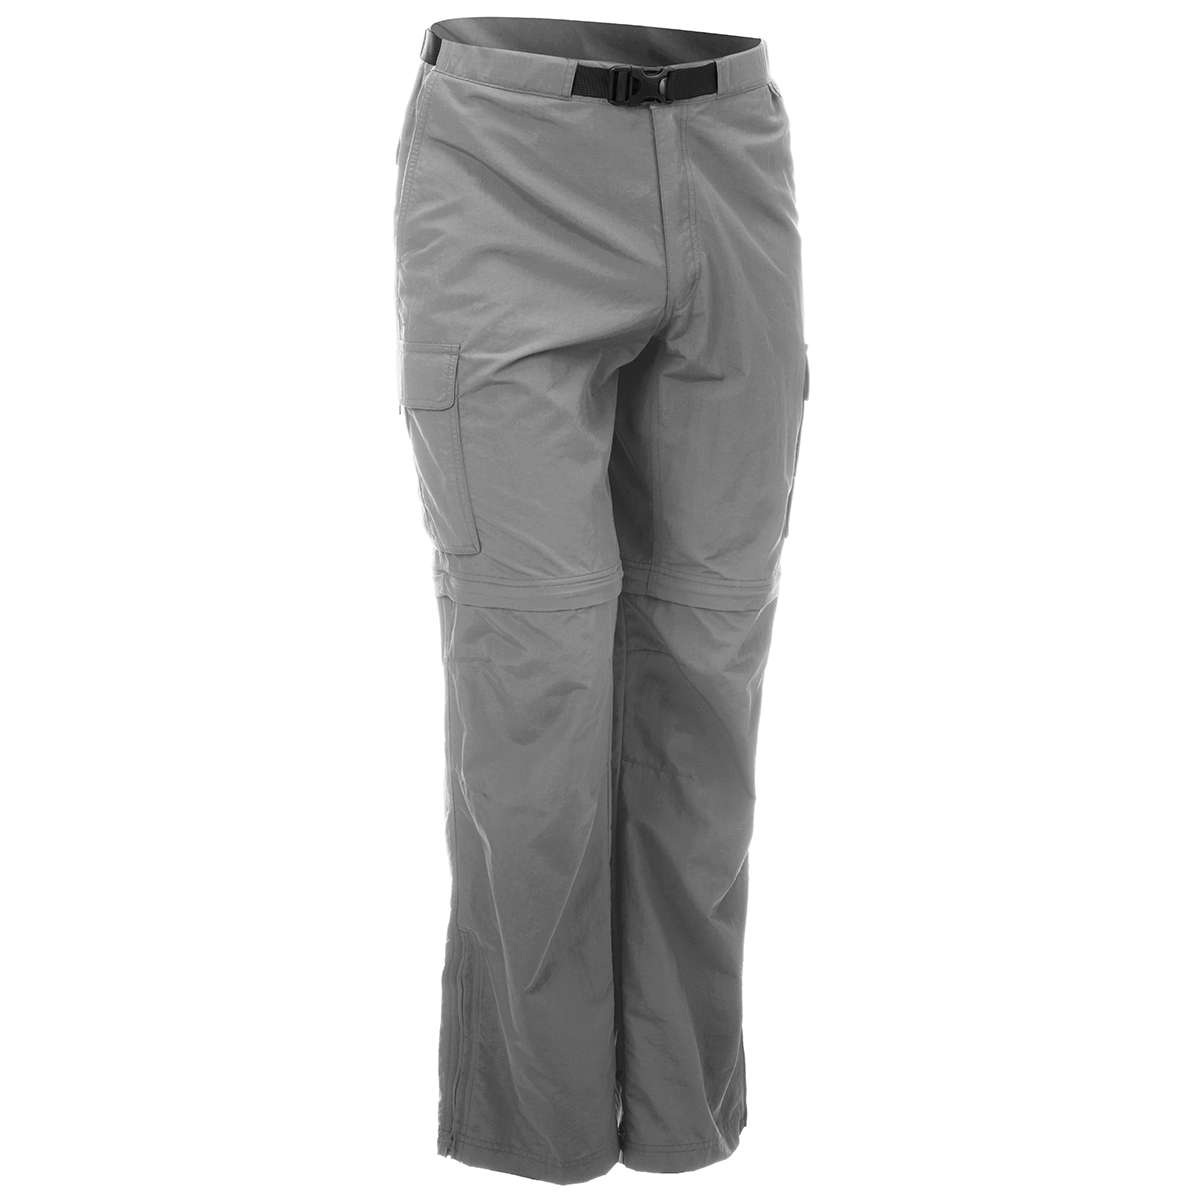 Ems Men's Camp Cargo Zip-Off Pants - White, 28/32